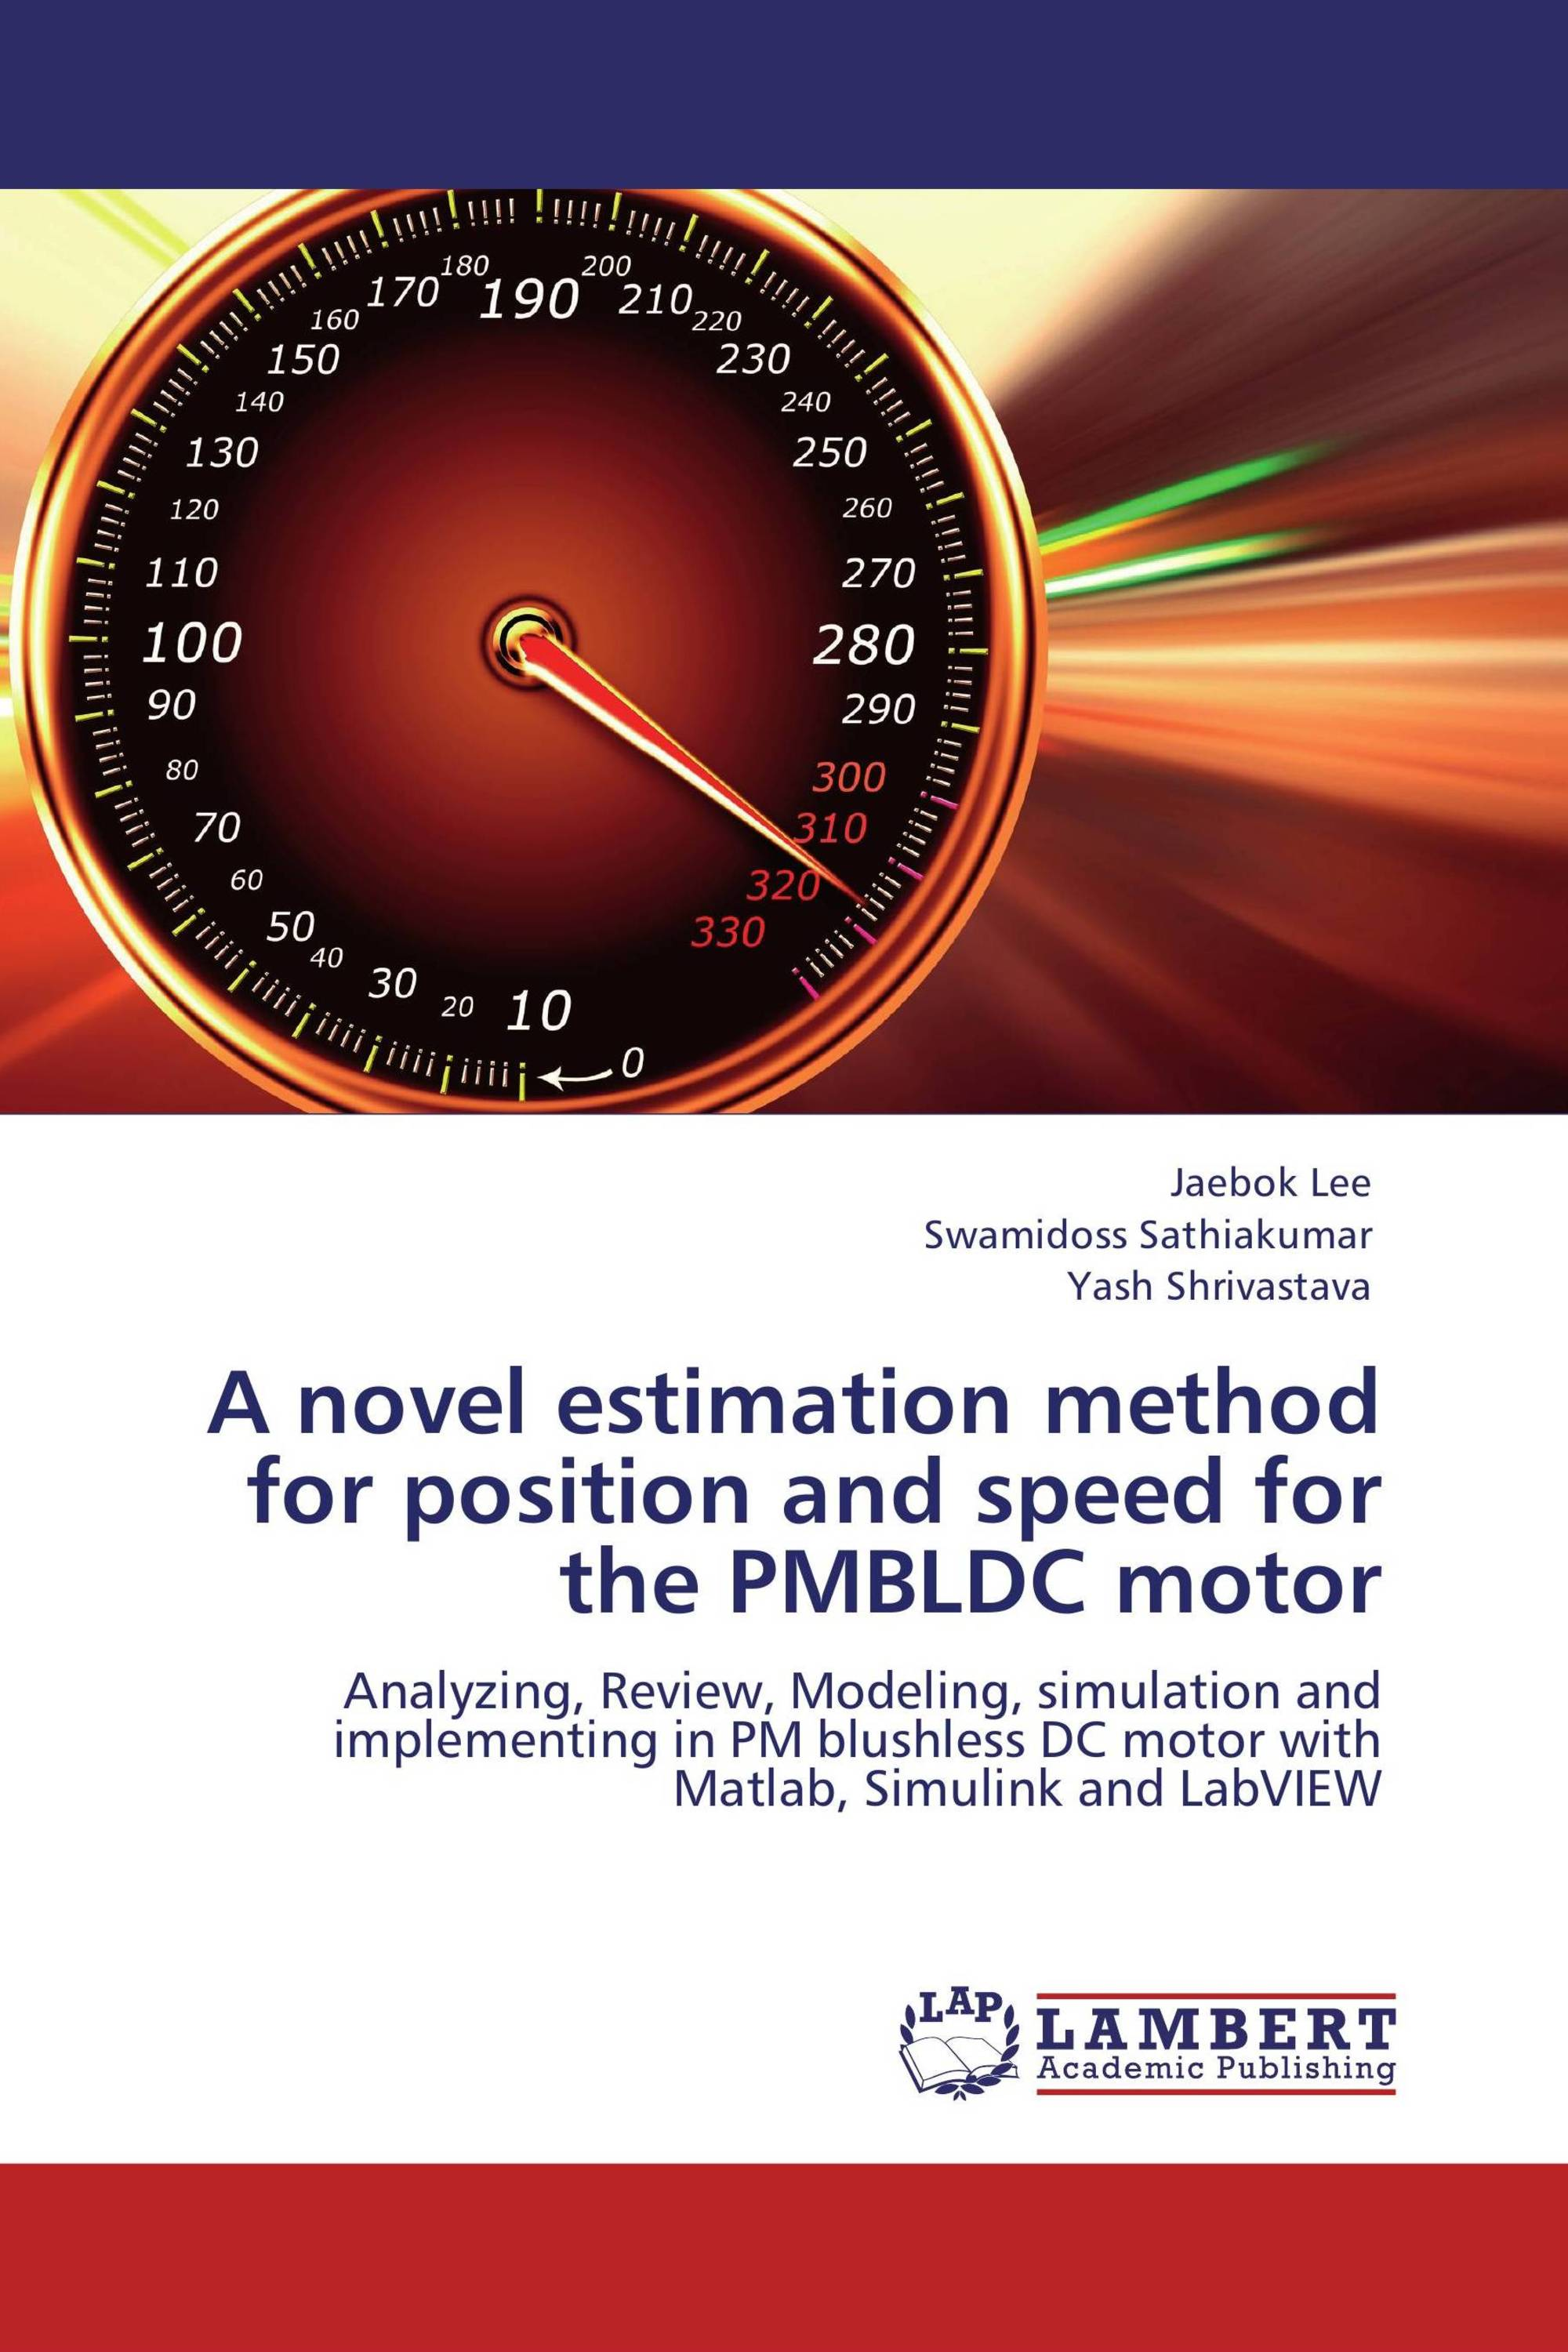 A novel estimation method for position and speed for the PMBLDC motor